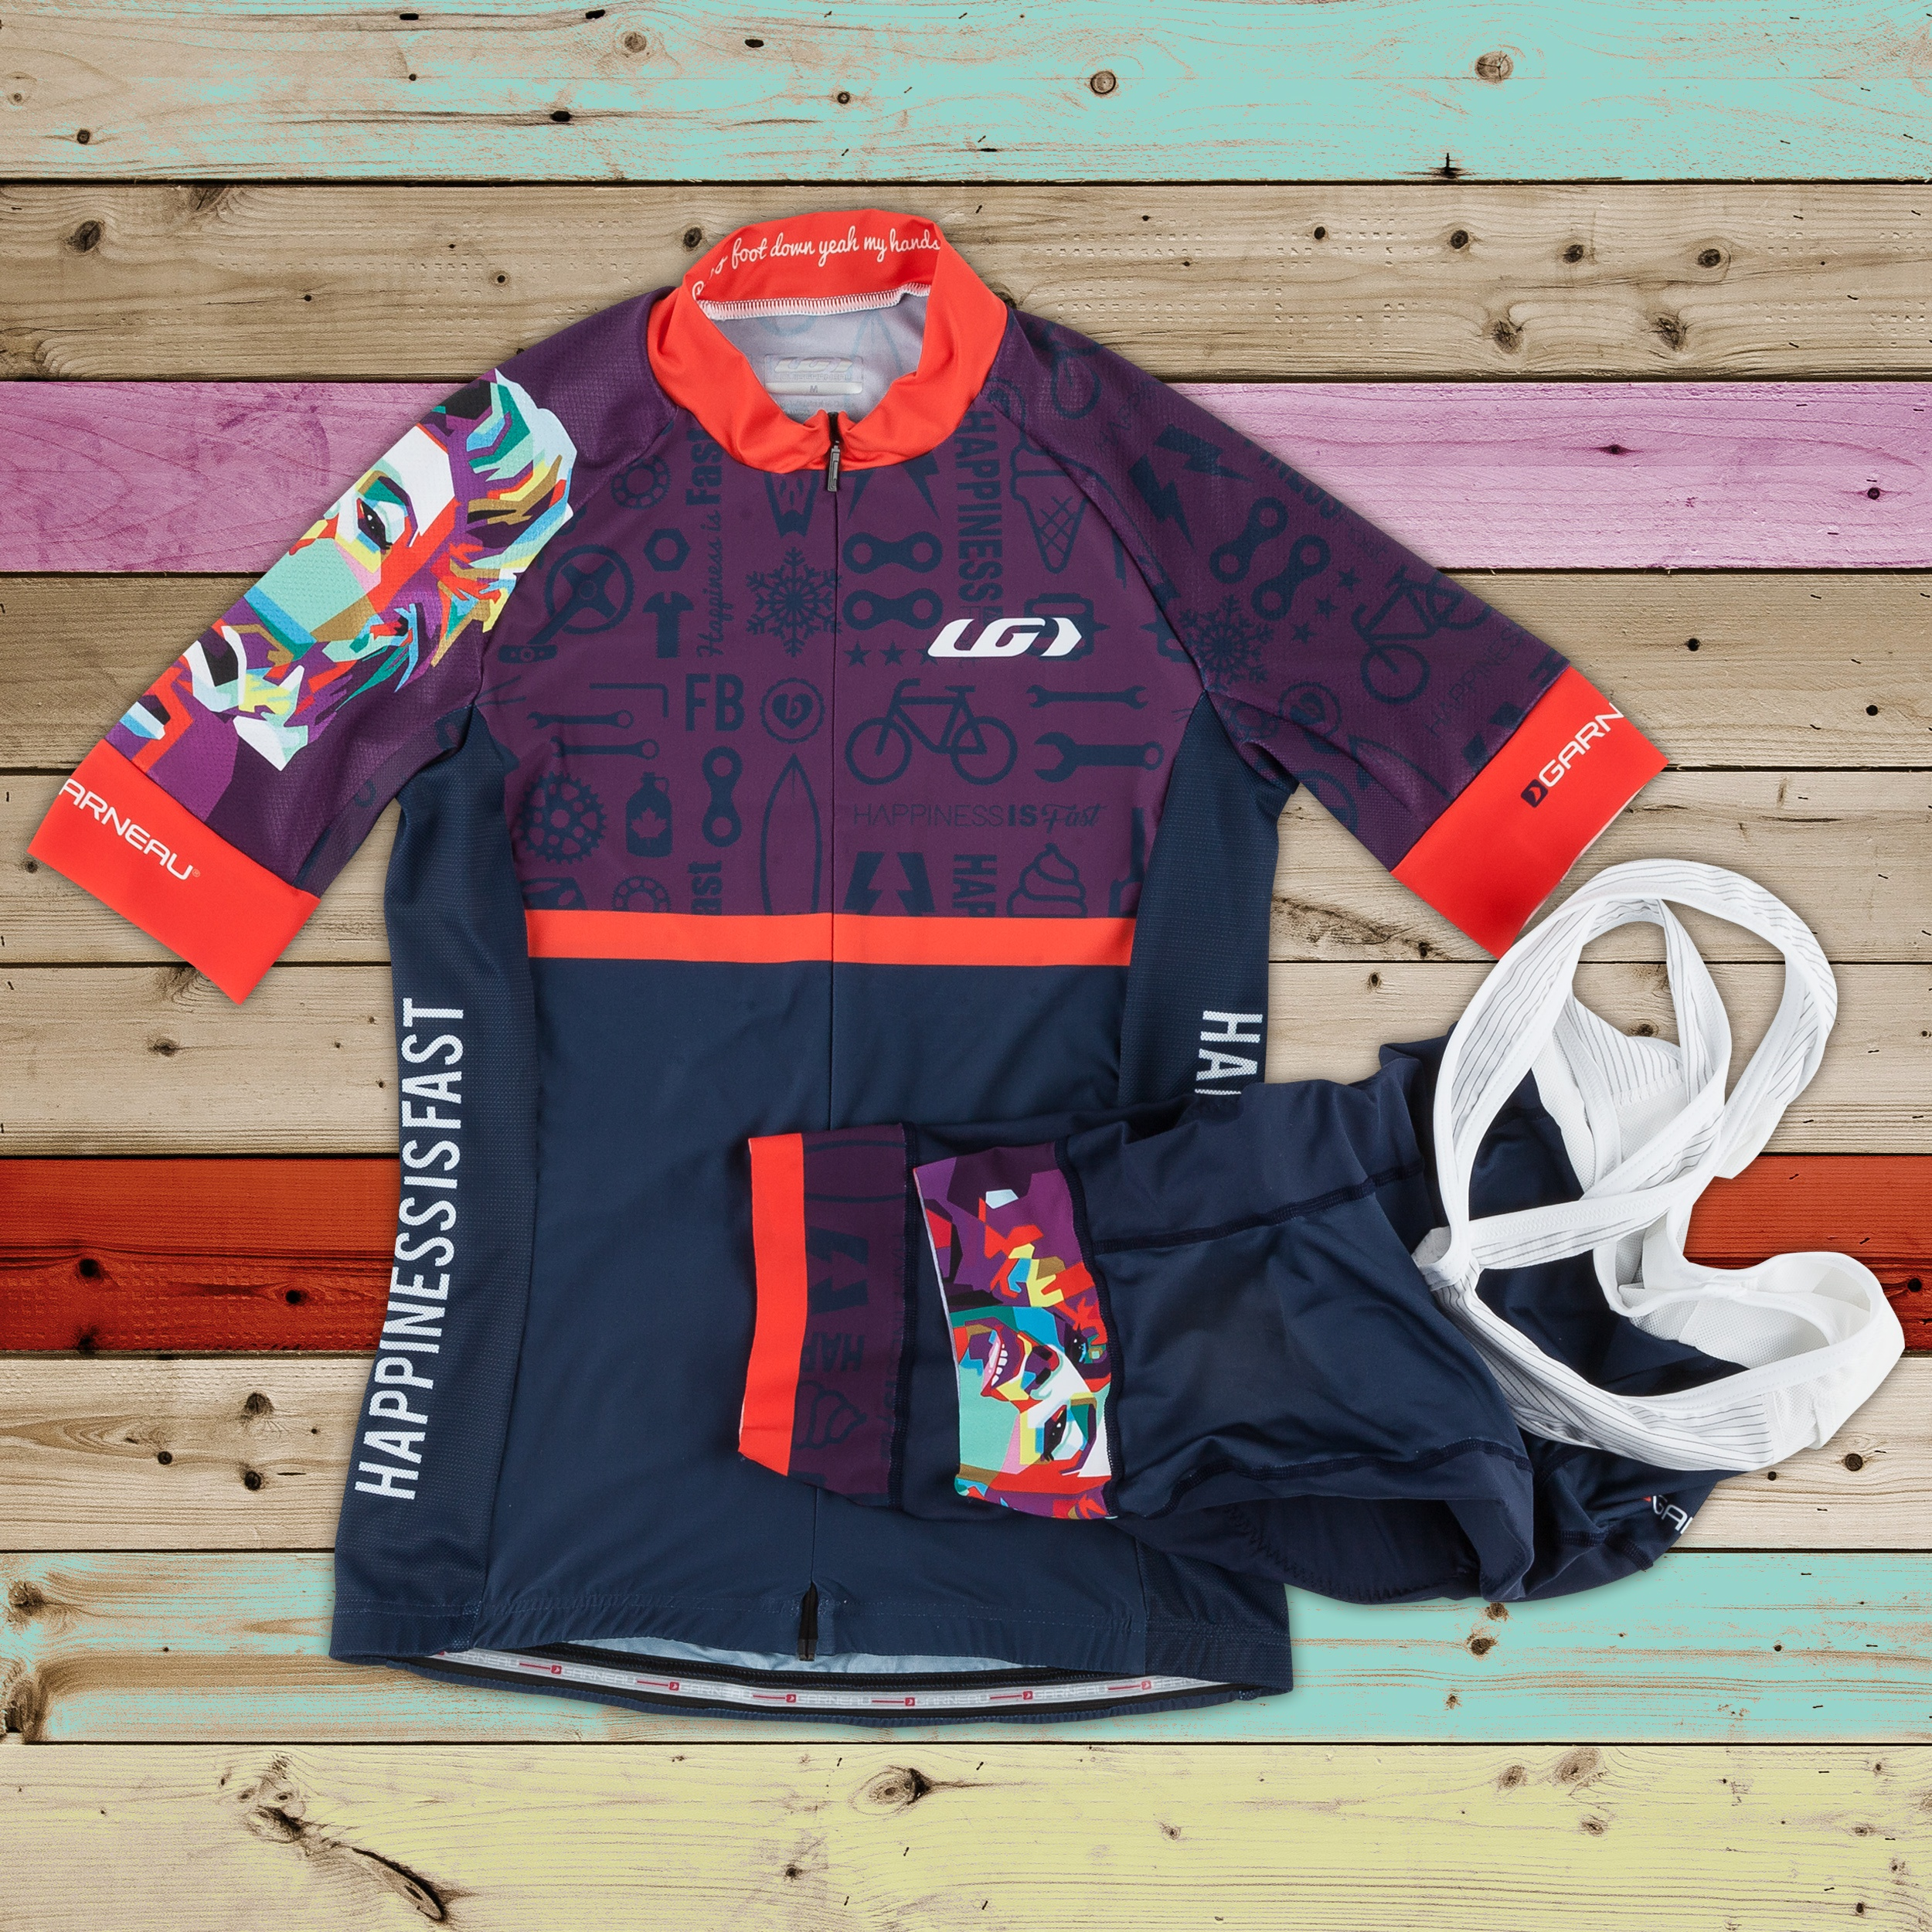 Lea Davison Custom Cycling Kit